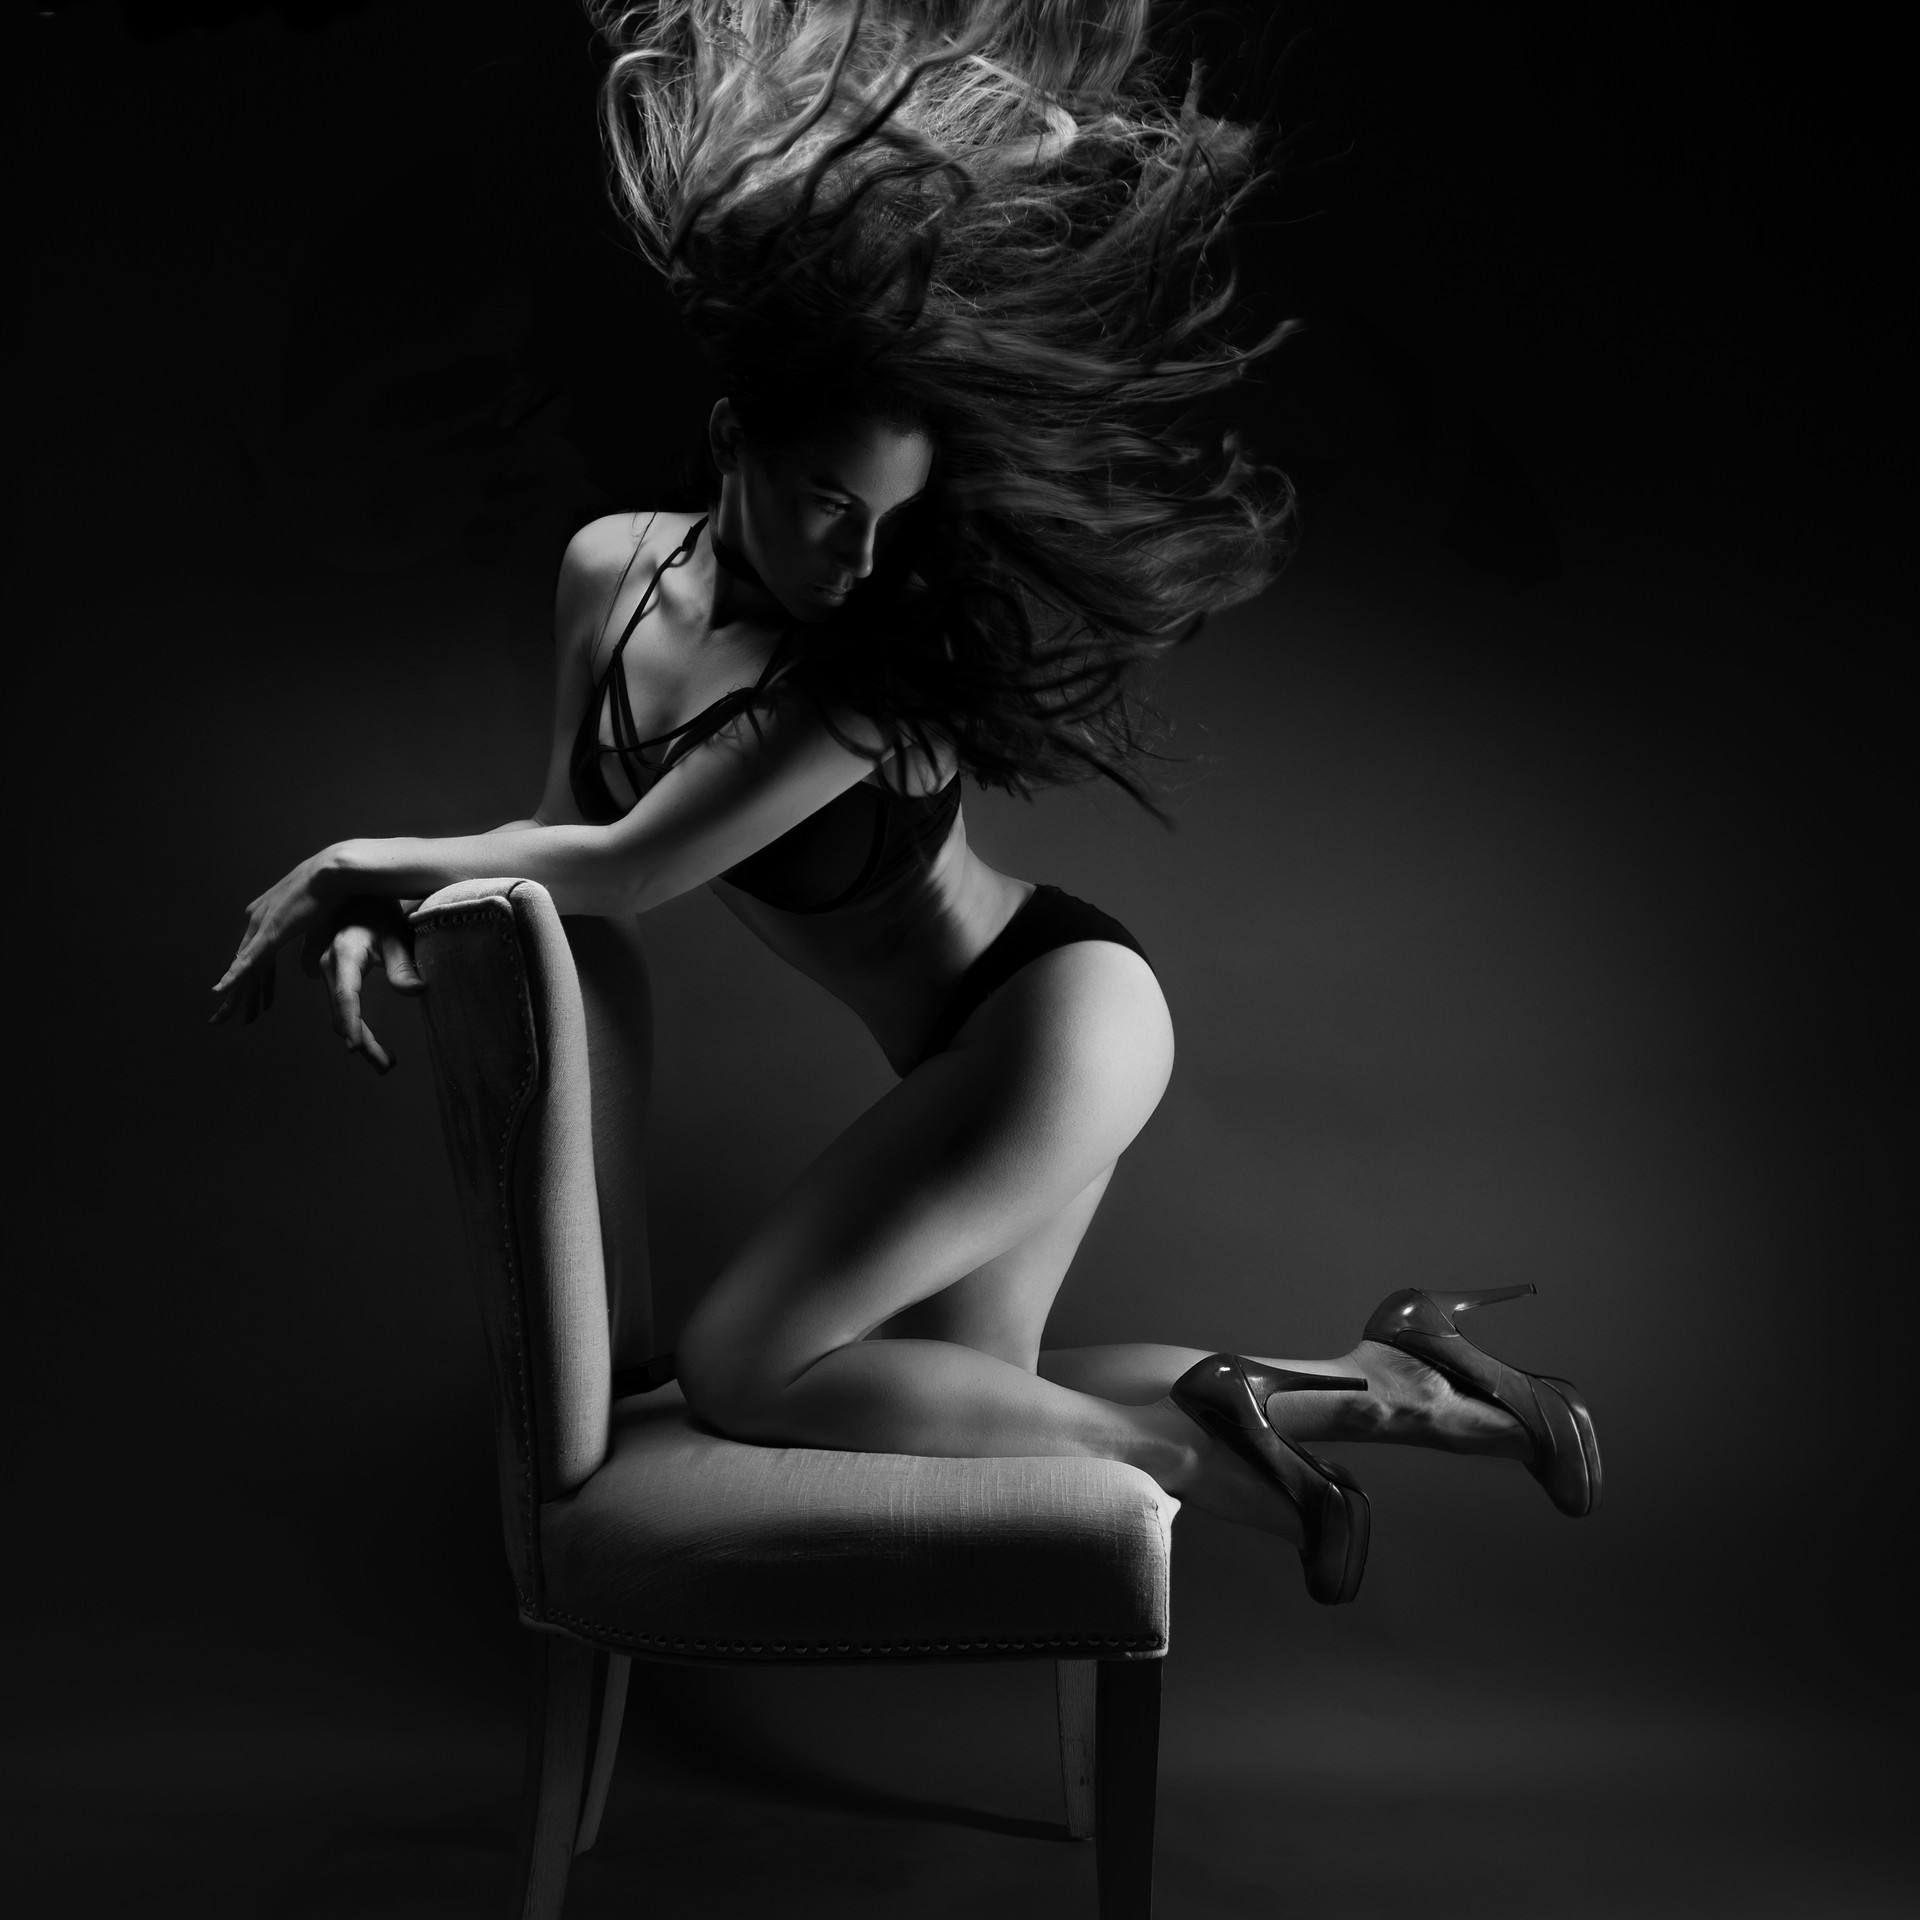 aline_hair_chair_b&w.jpg